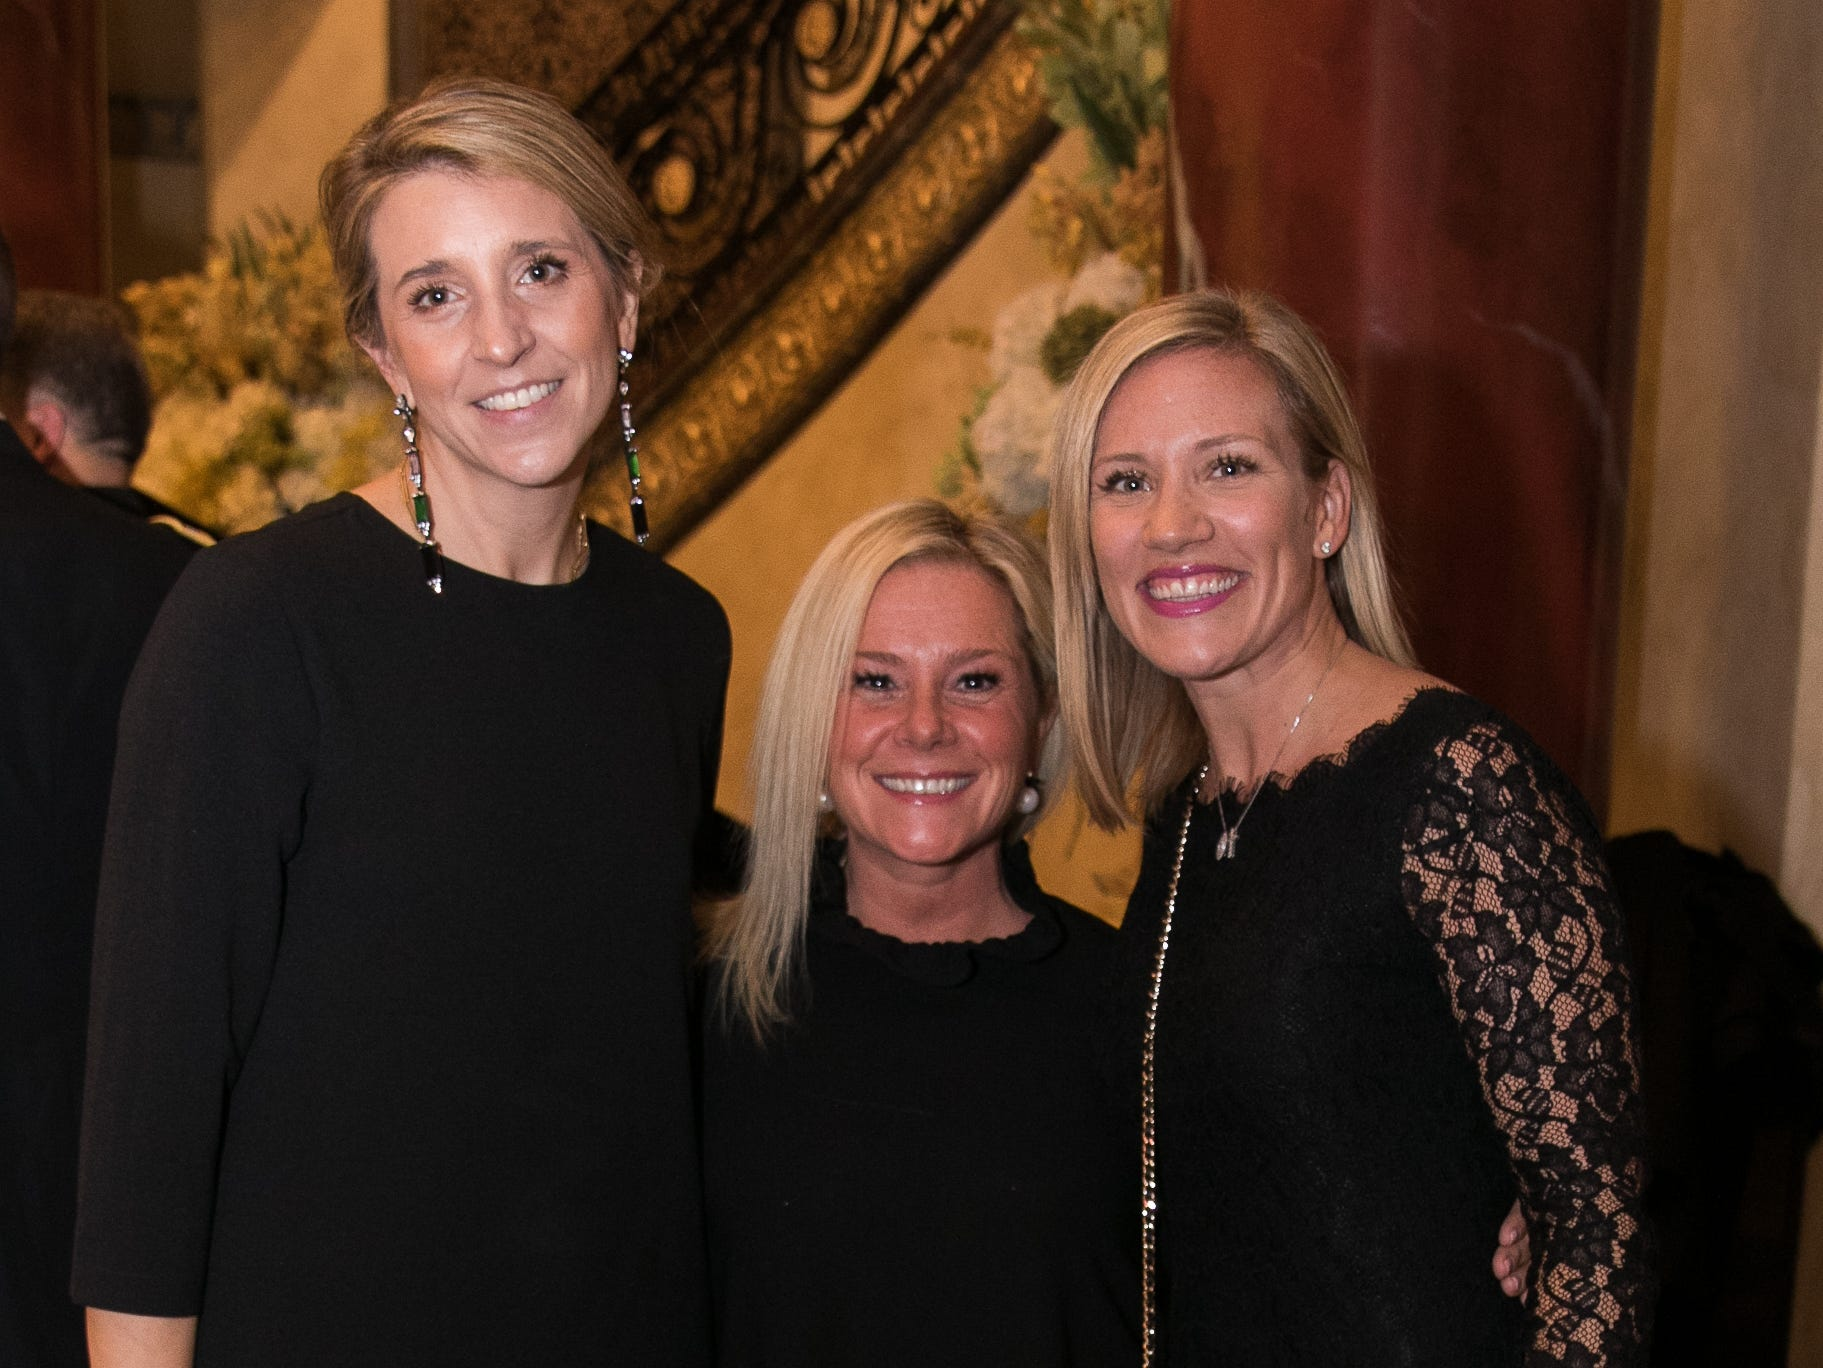 Paula Knight, Bridgette Kelly, Kate Eitner. Don Bosco Prep held it's 17th Annual President's Gala at The Venitian in Garfield, NJ. 10/25/2018